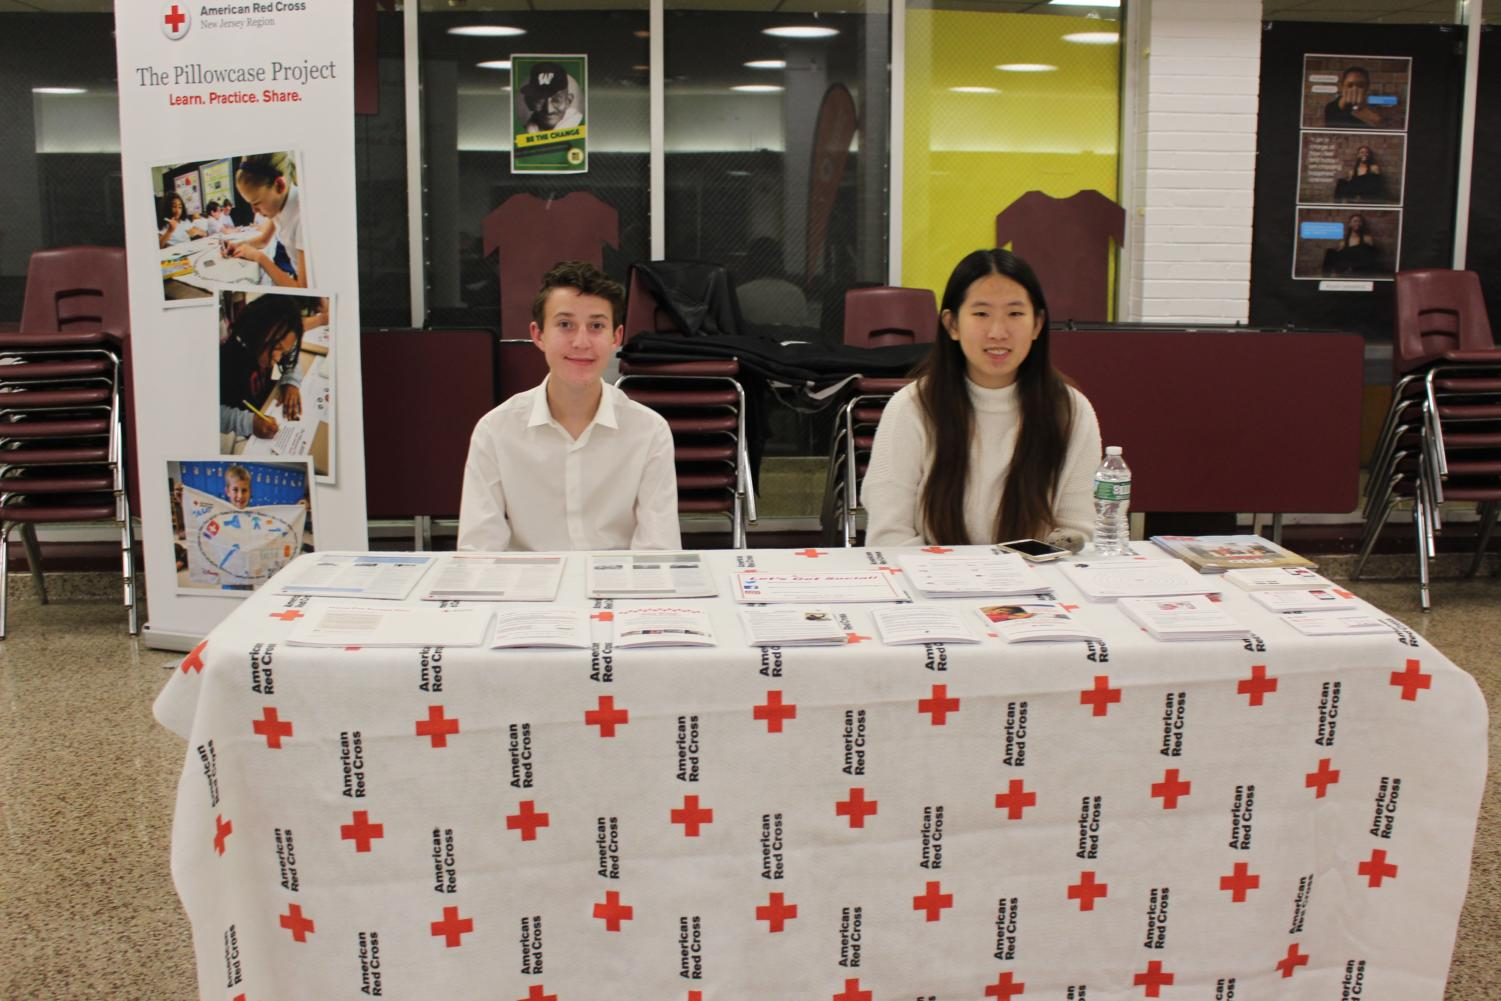 Freshman+Isaac+Gotian+and+senior+Jessi+Chen+manning+the+Red+Cross+informational+booth+at+the+concert.